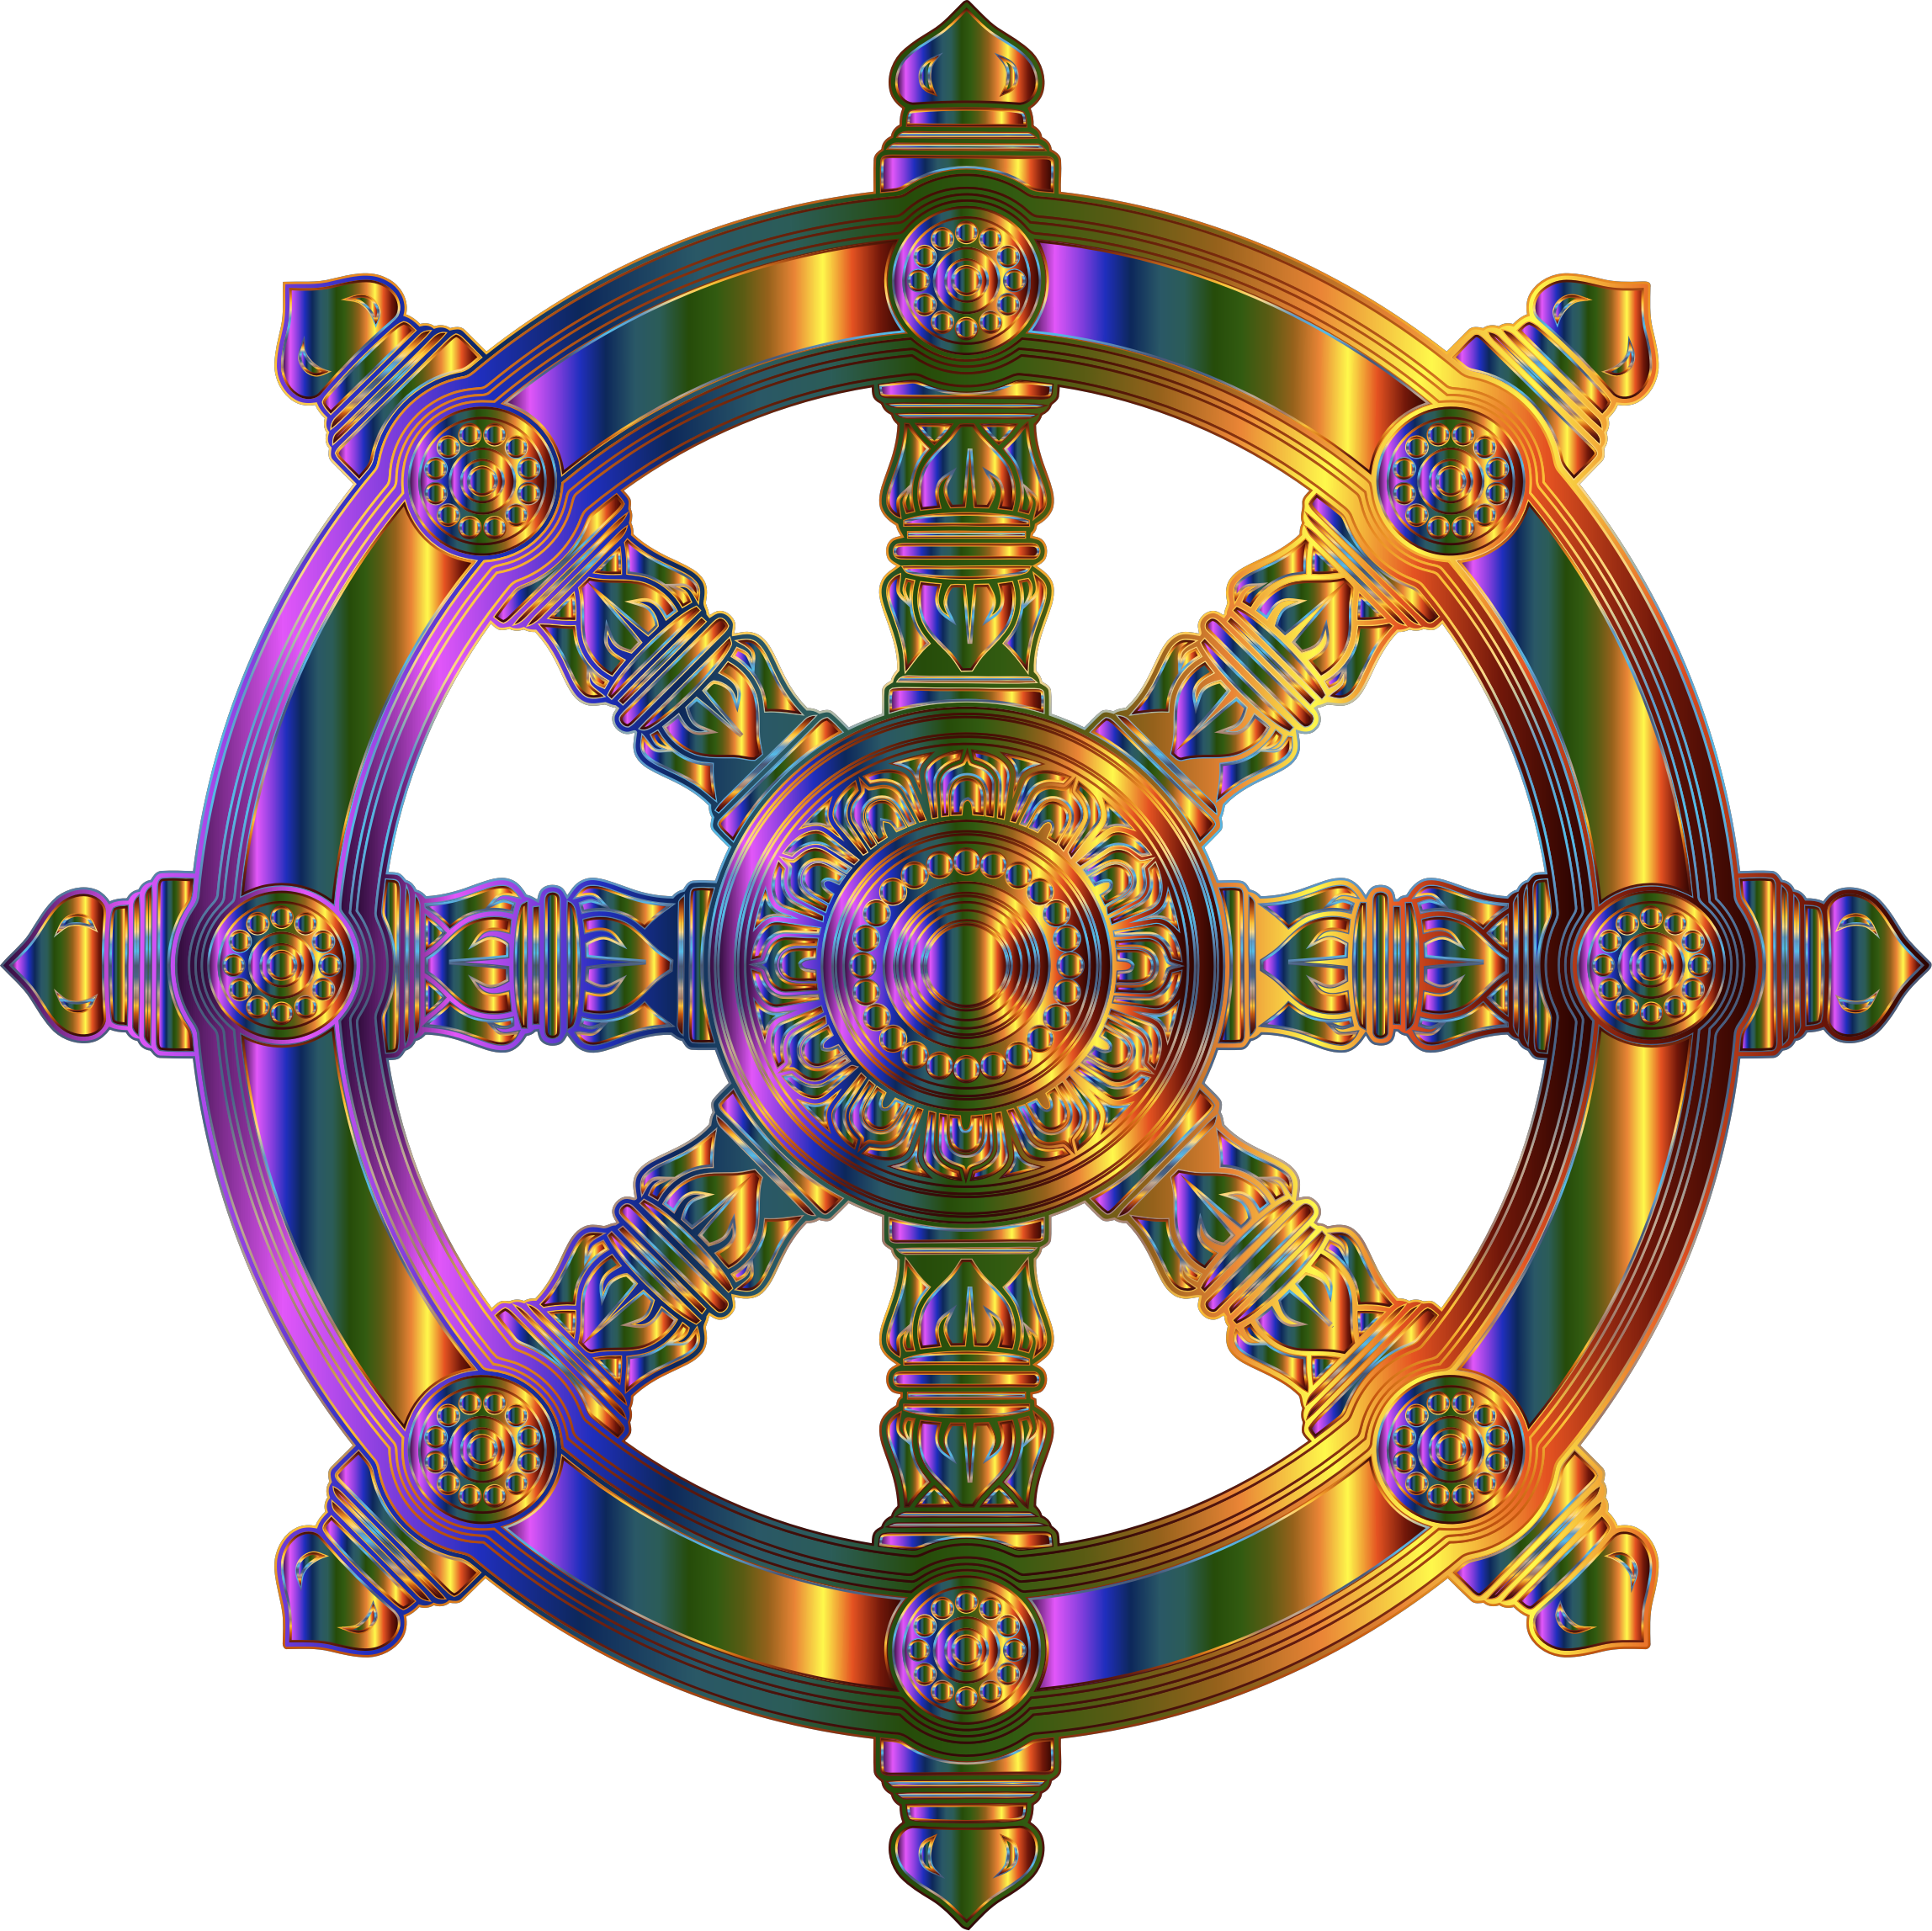 Chromatic Ornate Dharma Wheel 2 by GDJ